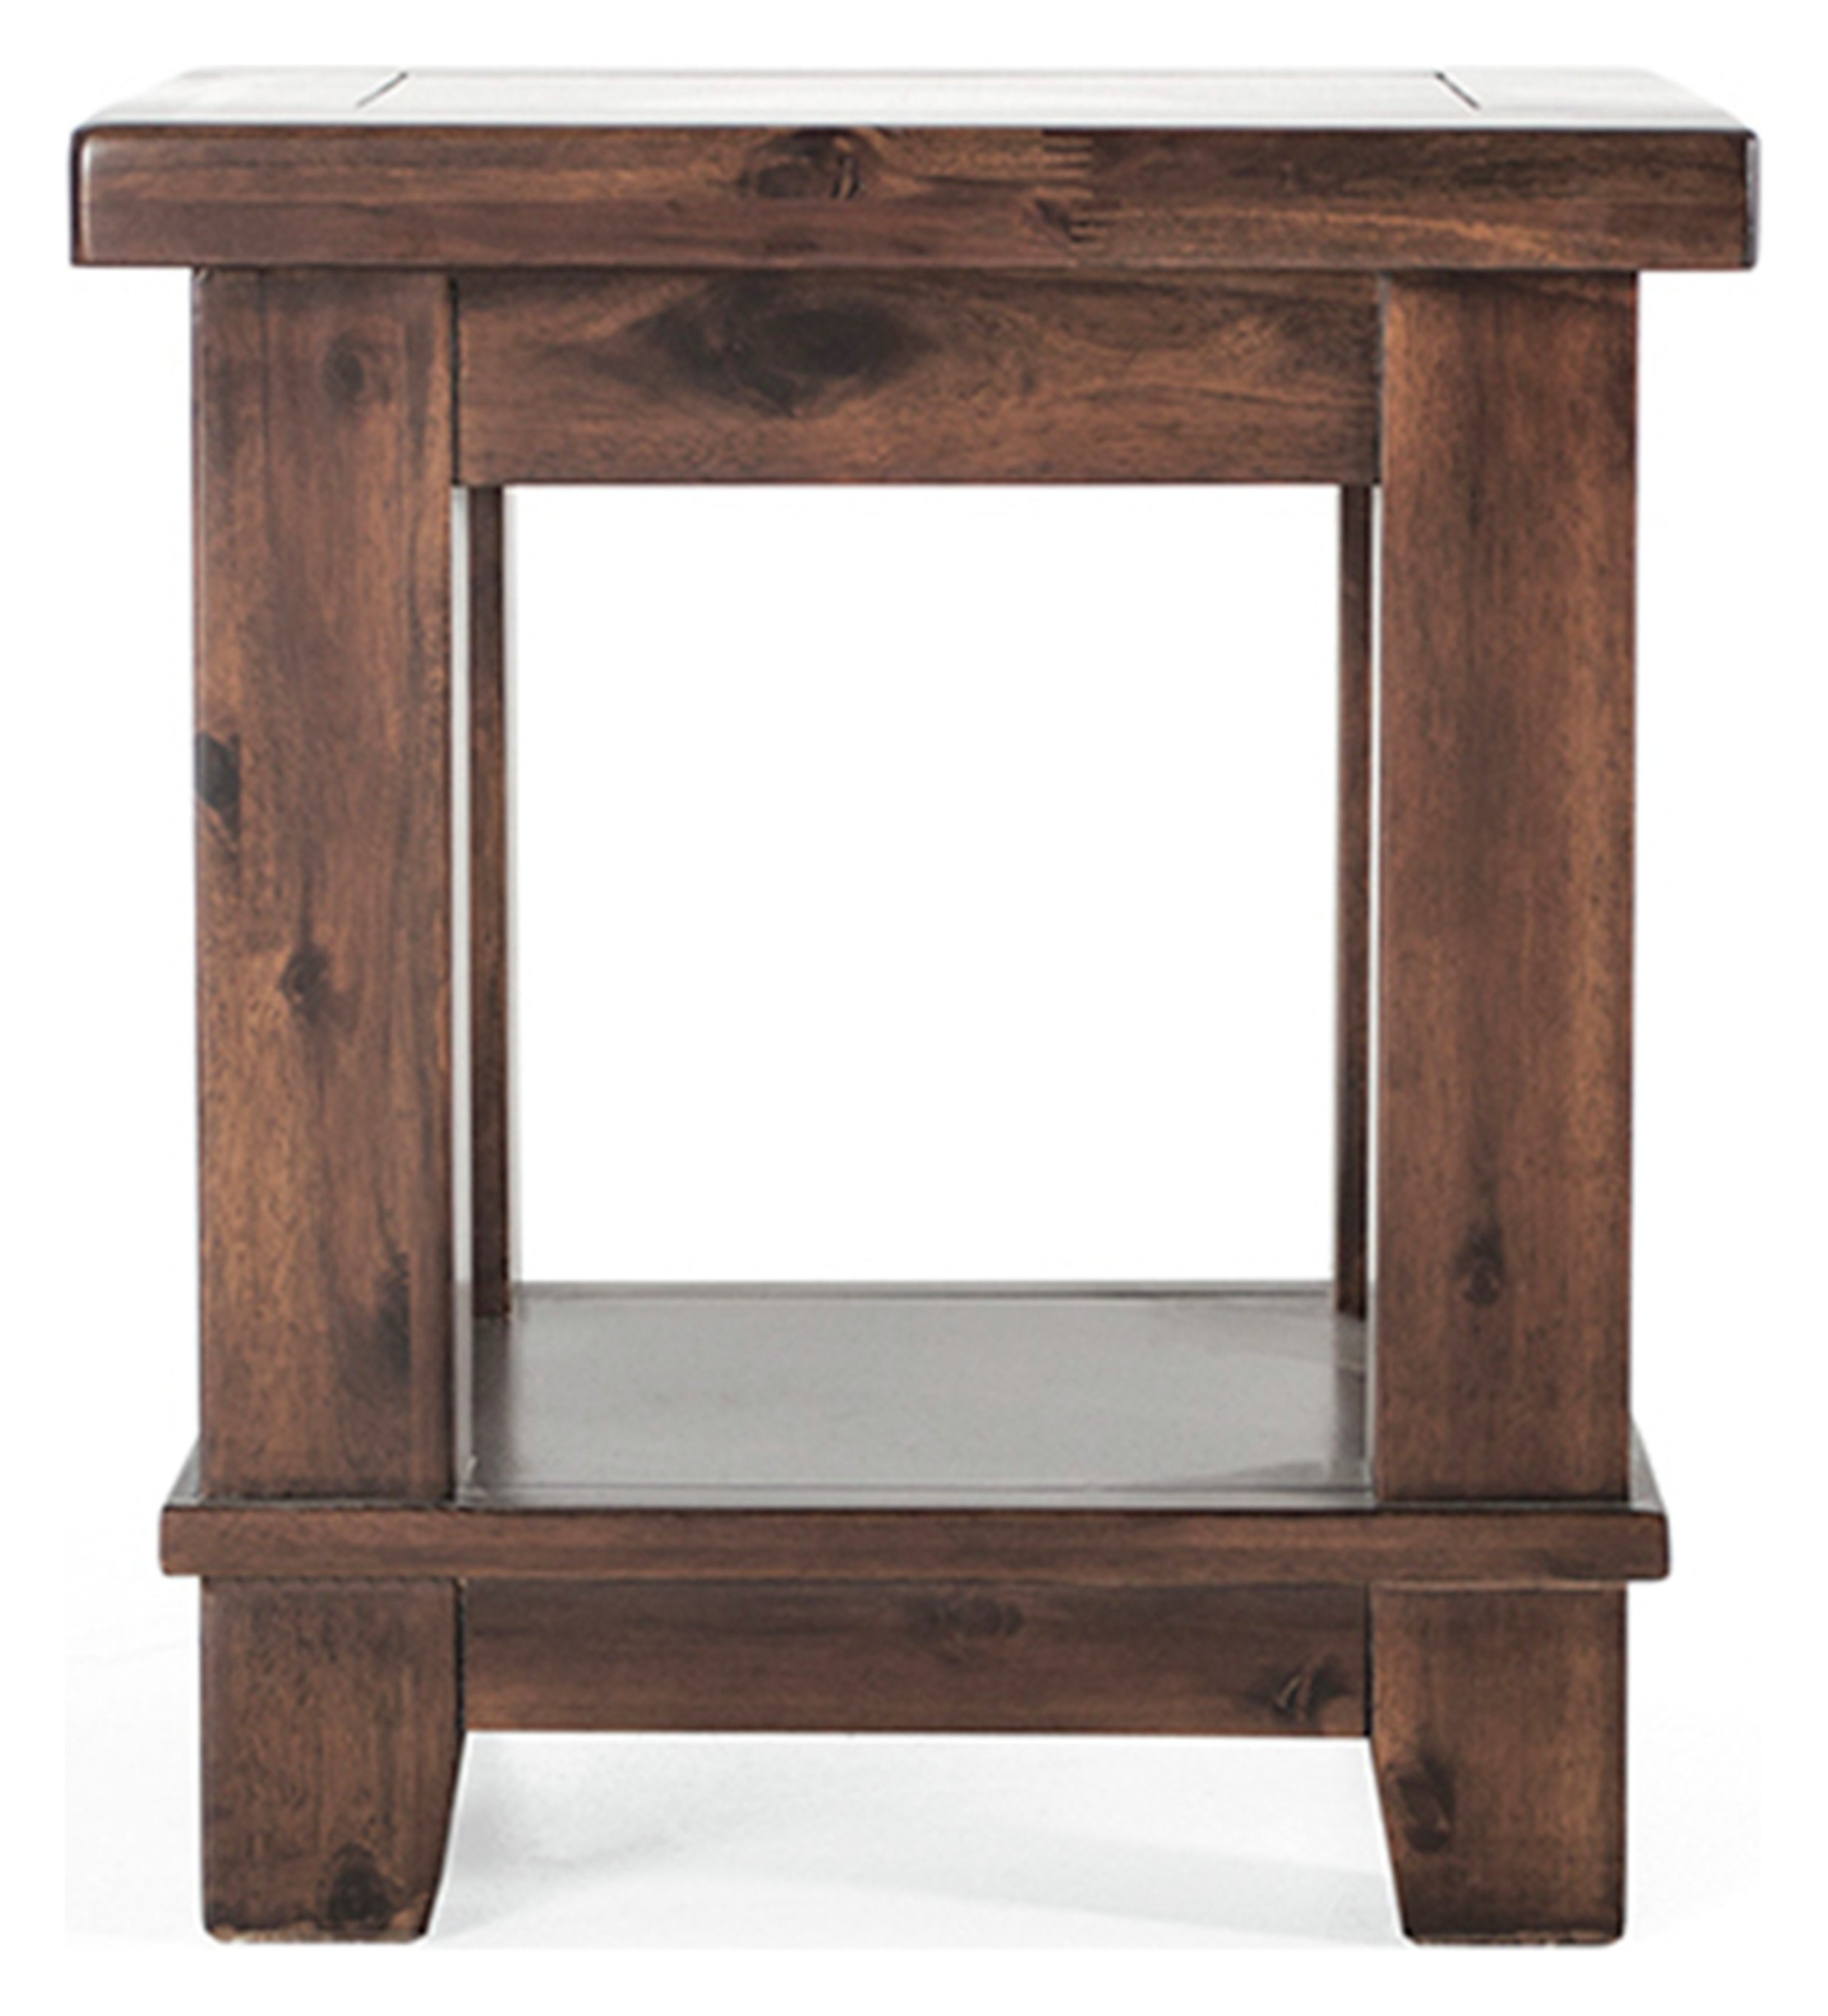 Image of Furnoko Emerson Solid Wood Lamp Table - Walnut